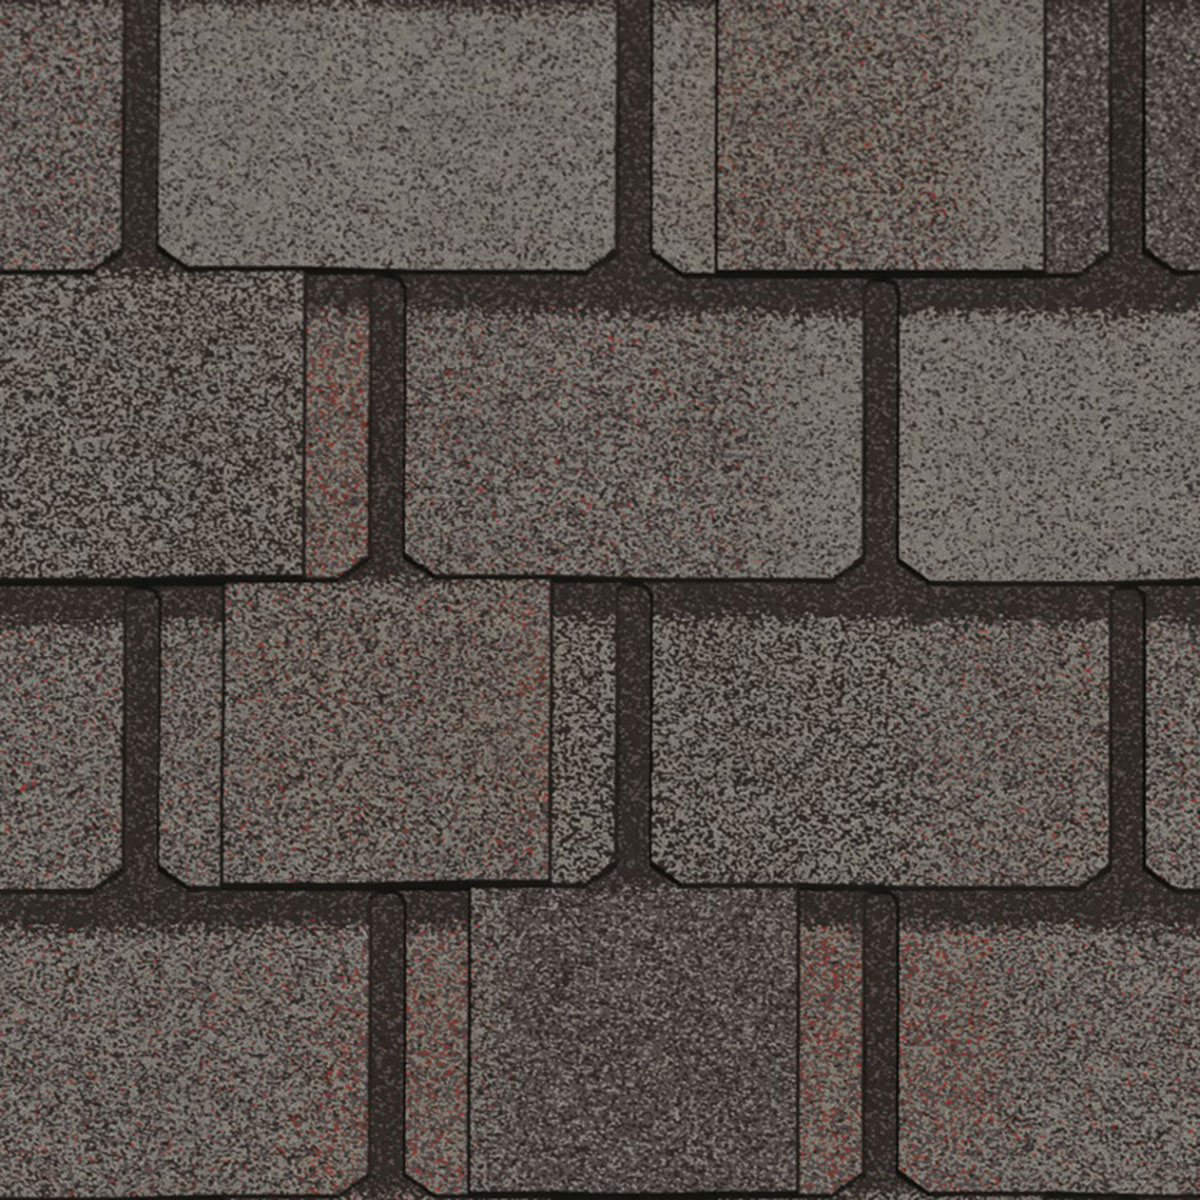 CT Belmont Colonial Slate <br>(CTBECOSL) <br>4 Bdl/Sq